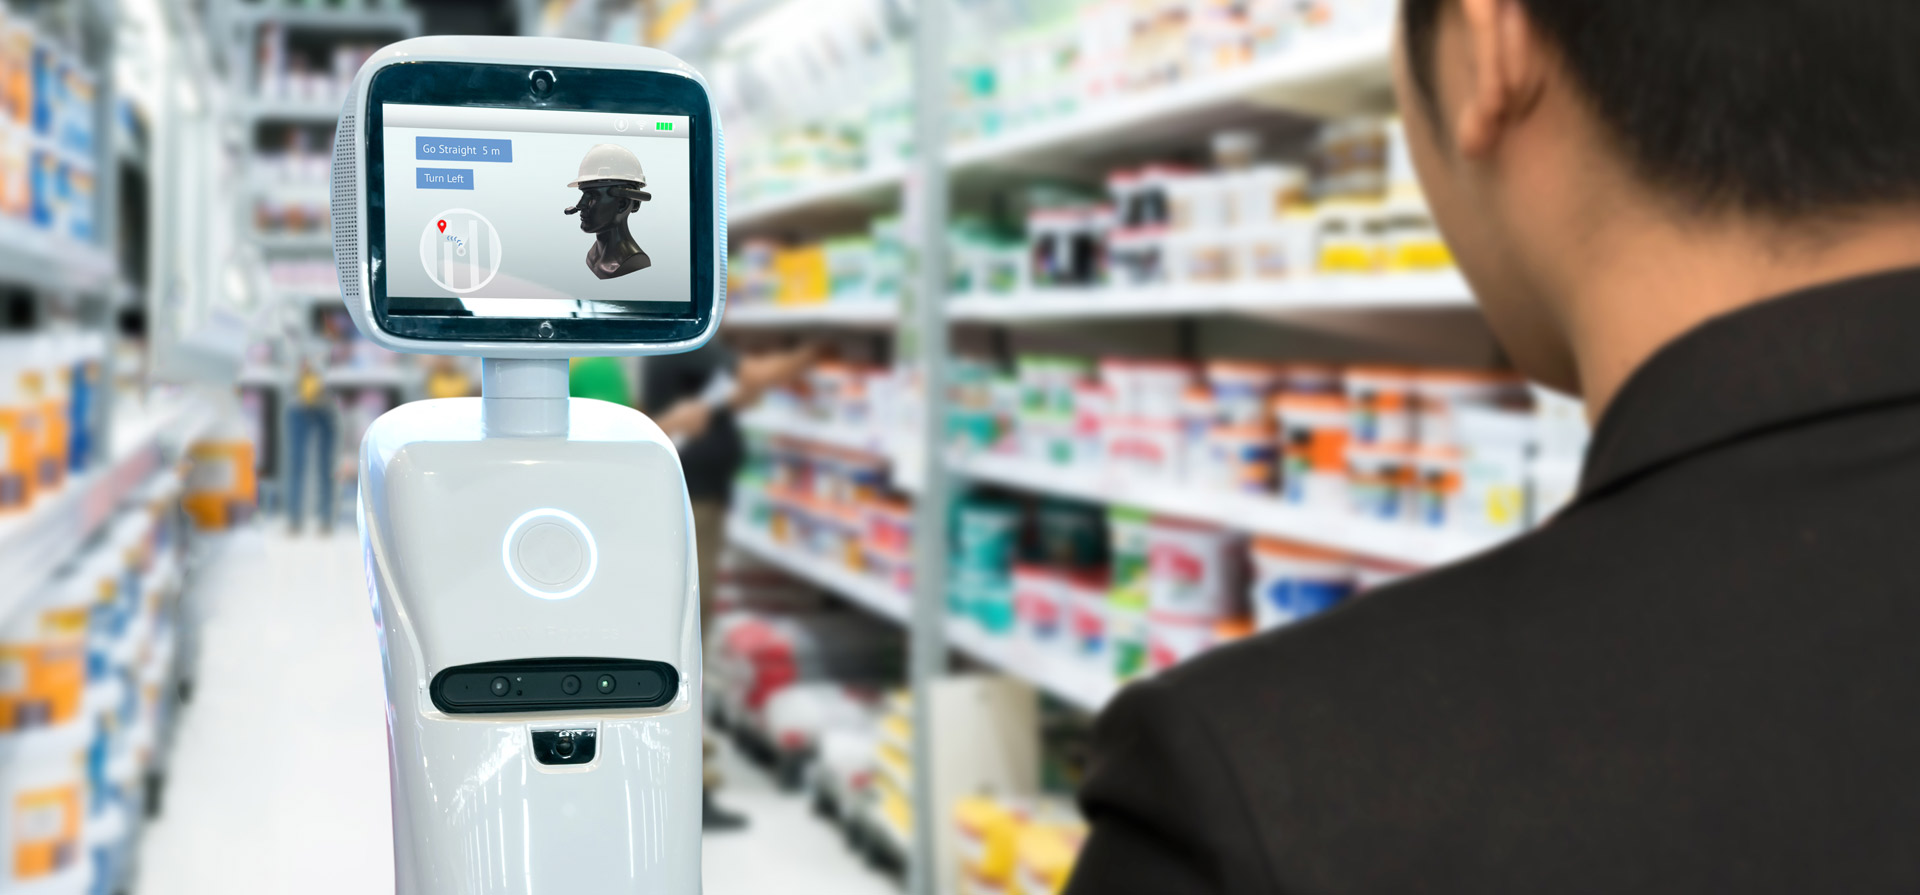 From Thought to Bot: The Rise of Commercial AI